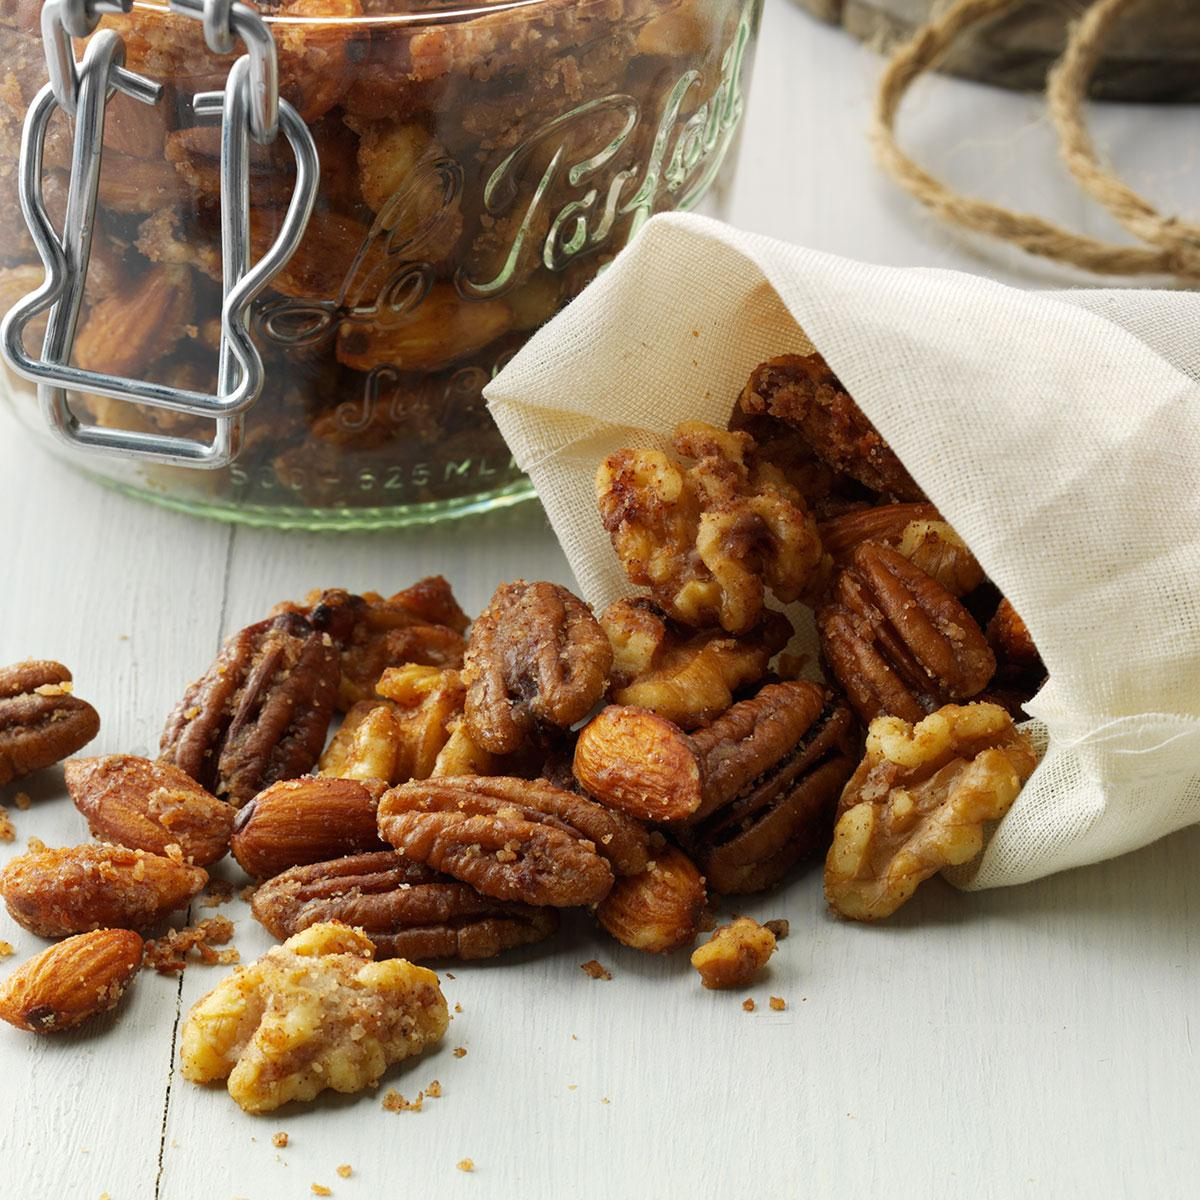 Discussion on this topic: Slow Cooker Roasted Sugared Pecans, slow-cooker-roasted-sugared-pecans/